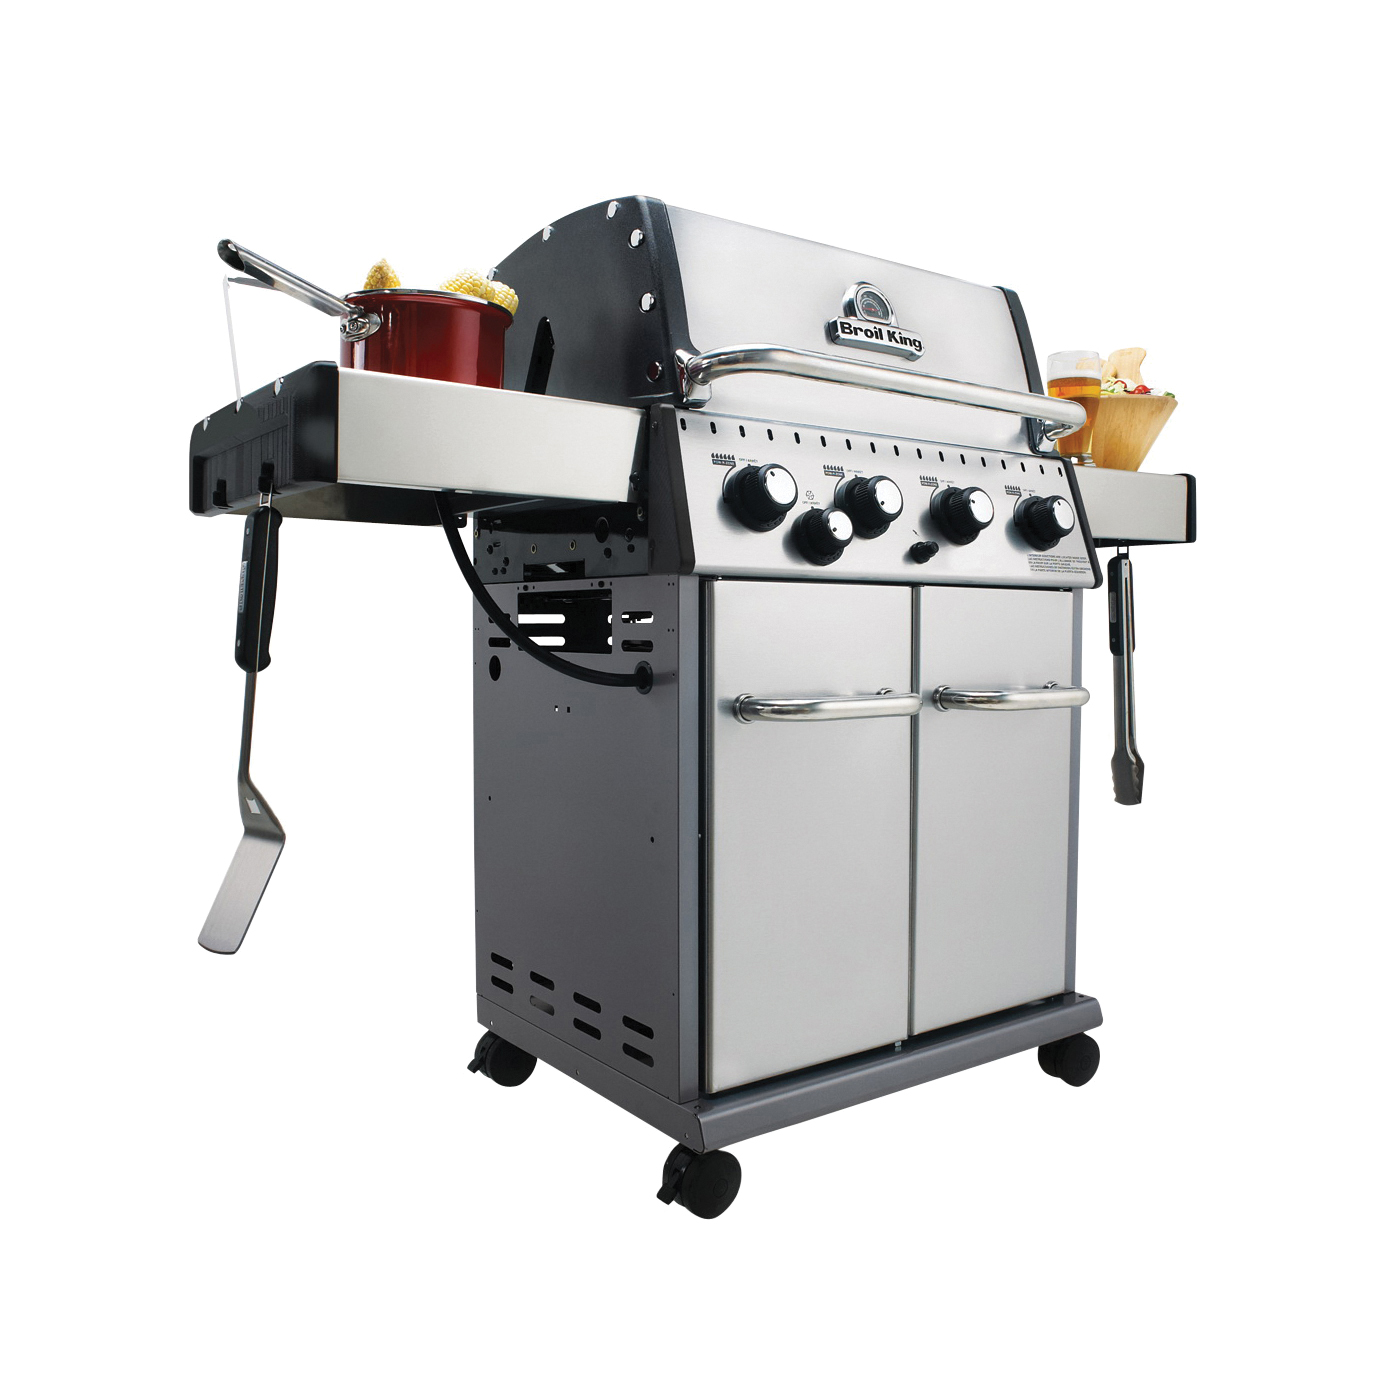 Picture of Broil King Baron 922564 Gas Grill, 40000 Btu/hr BTU, Liquid Propane, 4 -Burner, 444 sq-in Primary Cooking Surface